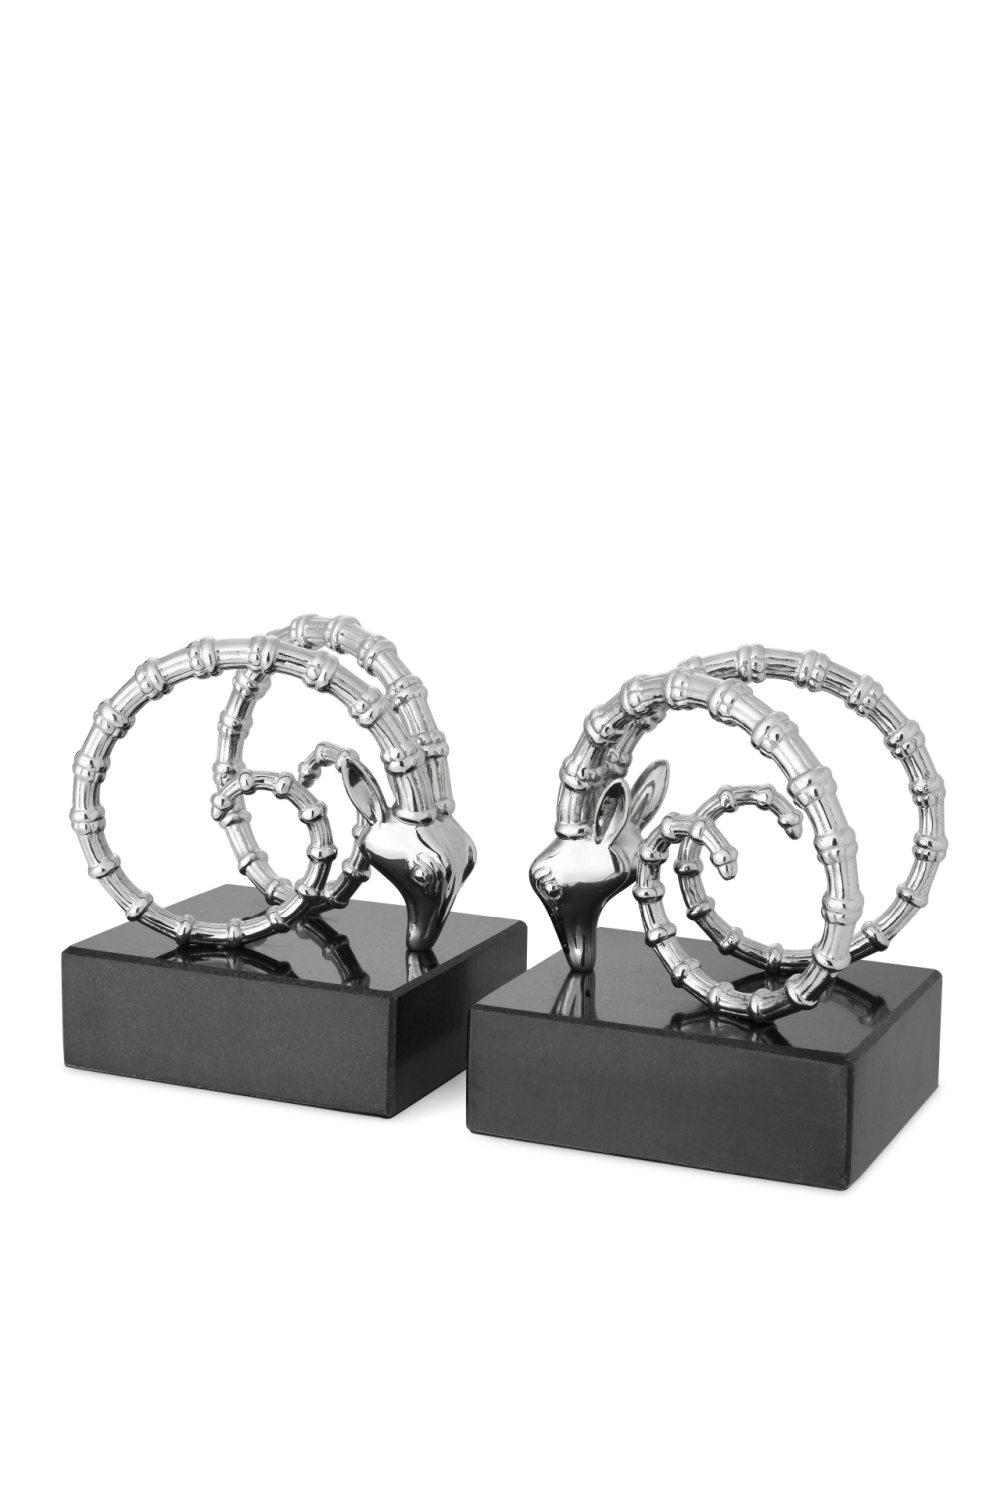 Ibex Bookend set of 2 | Eichholtz Ibex | #1 Eichholtz Online Retailer